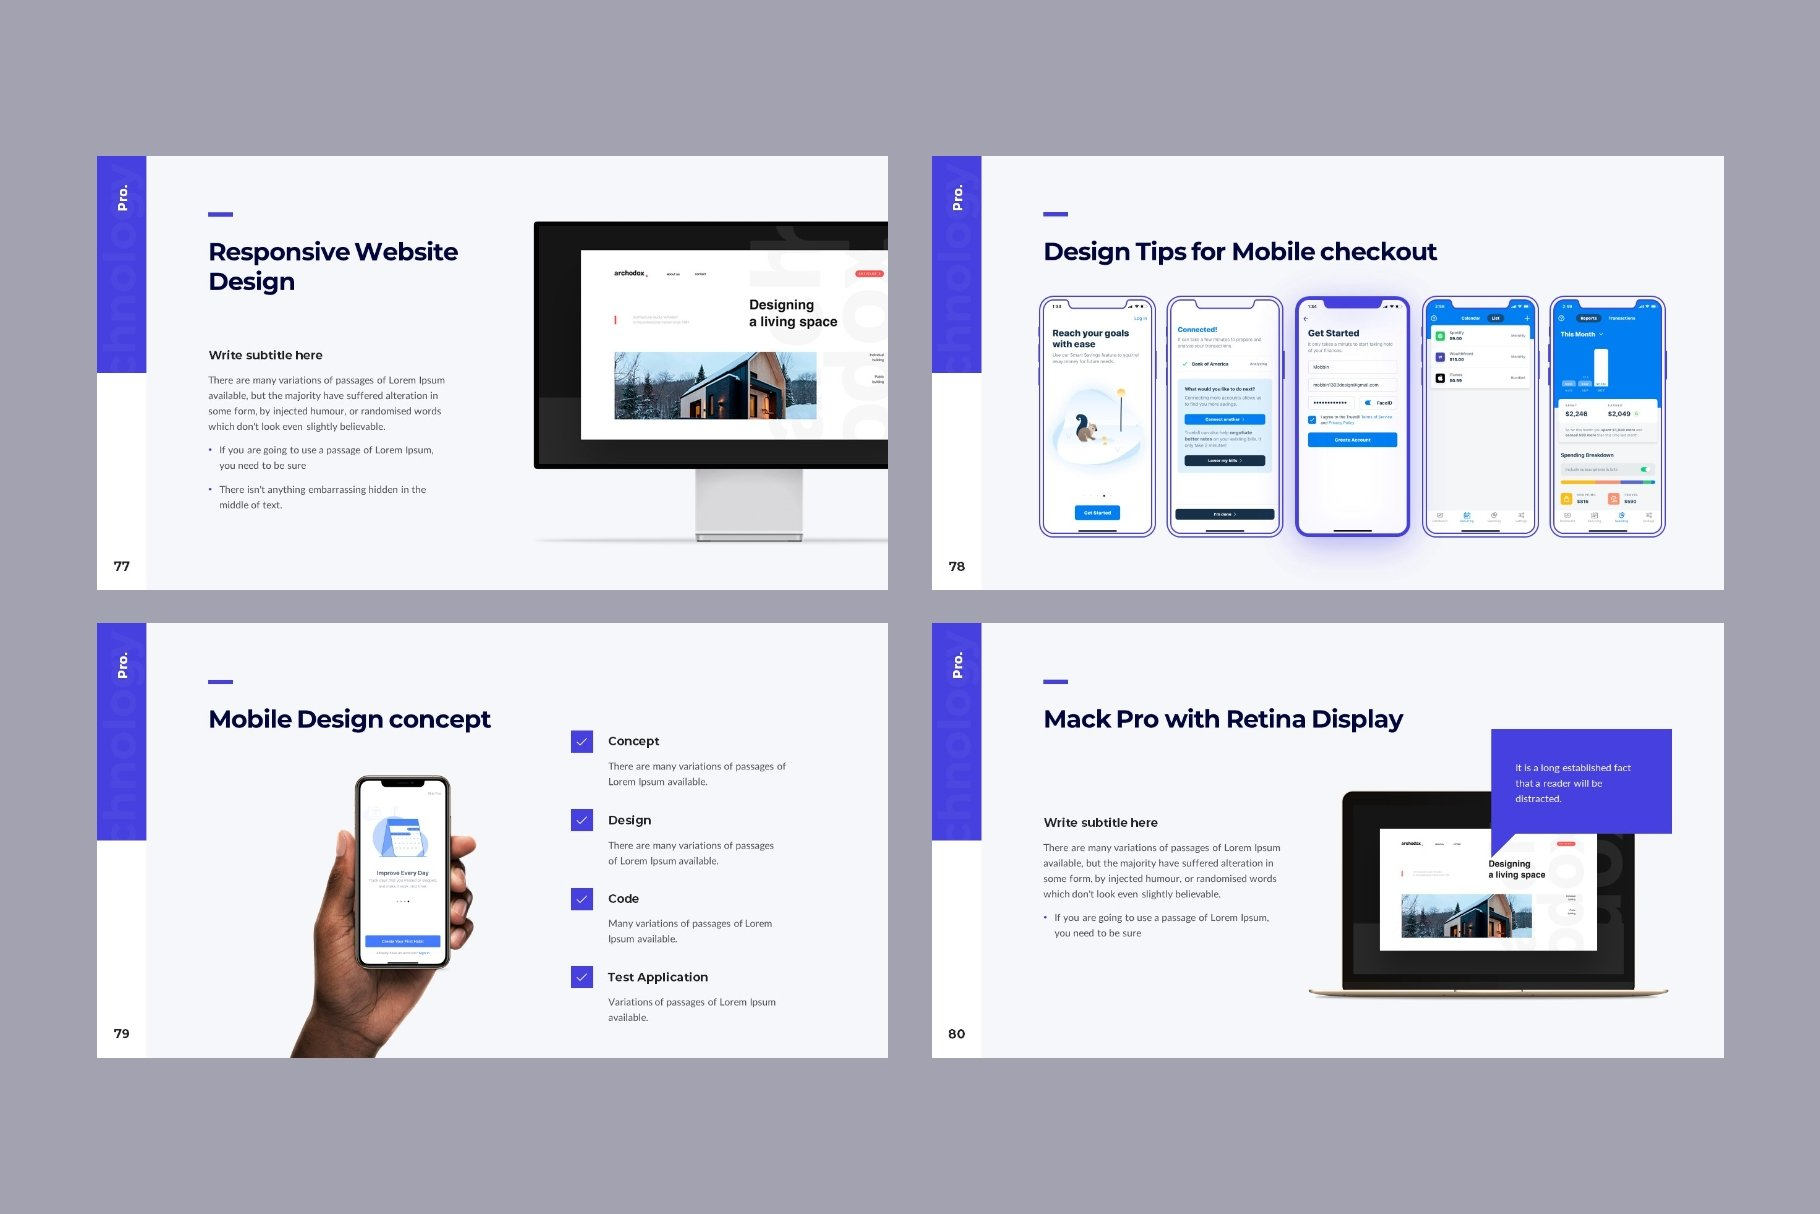 This design is responsive and flexibility.